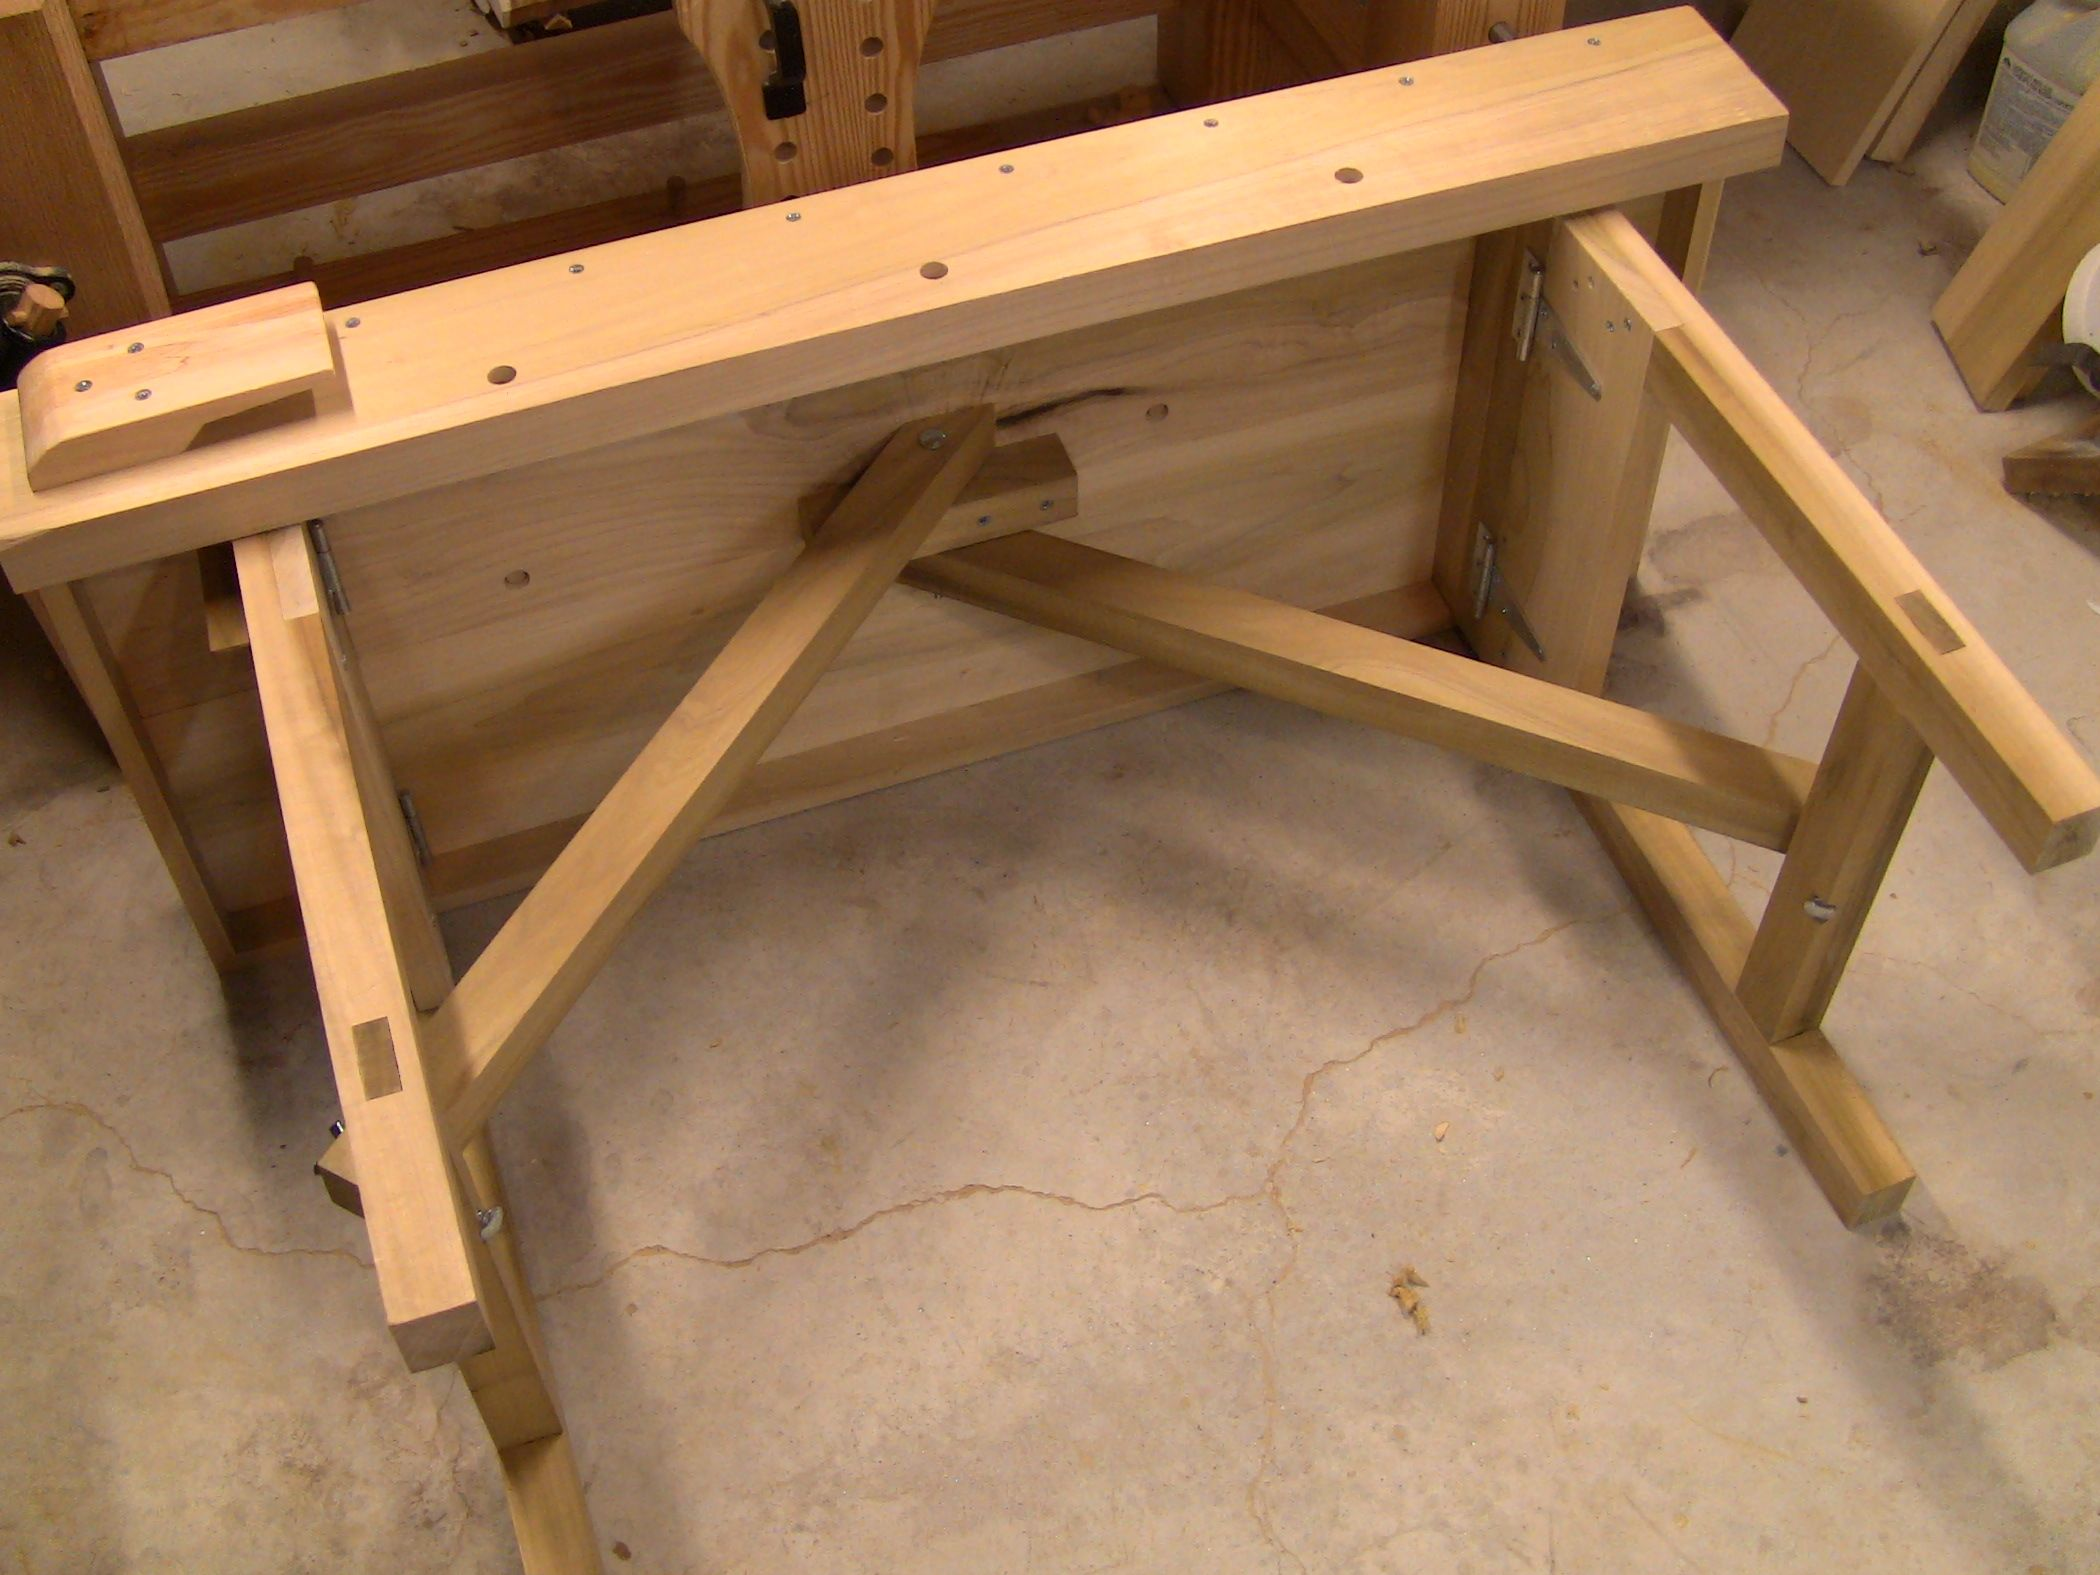 Closegrain Com Blog Photos September 2010 Portable Workbench Easy Woodworking Projects Woodworking Projects